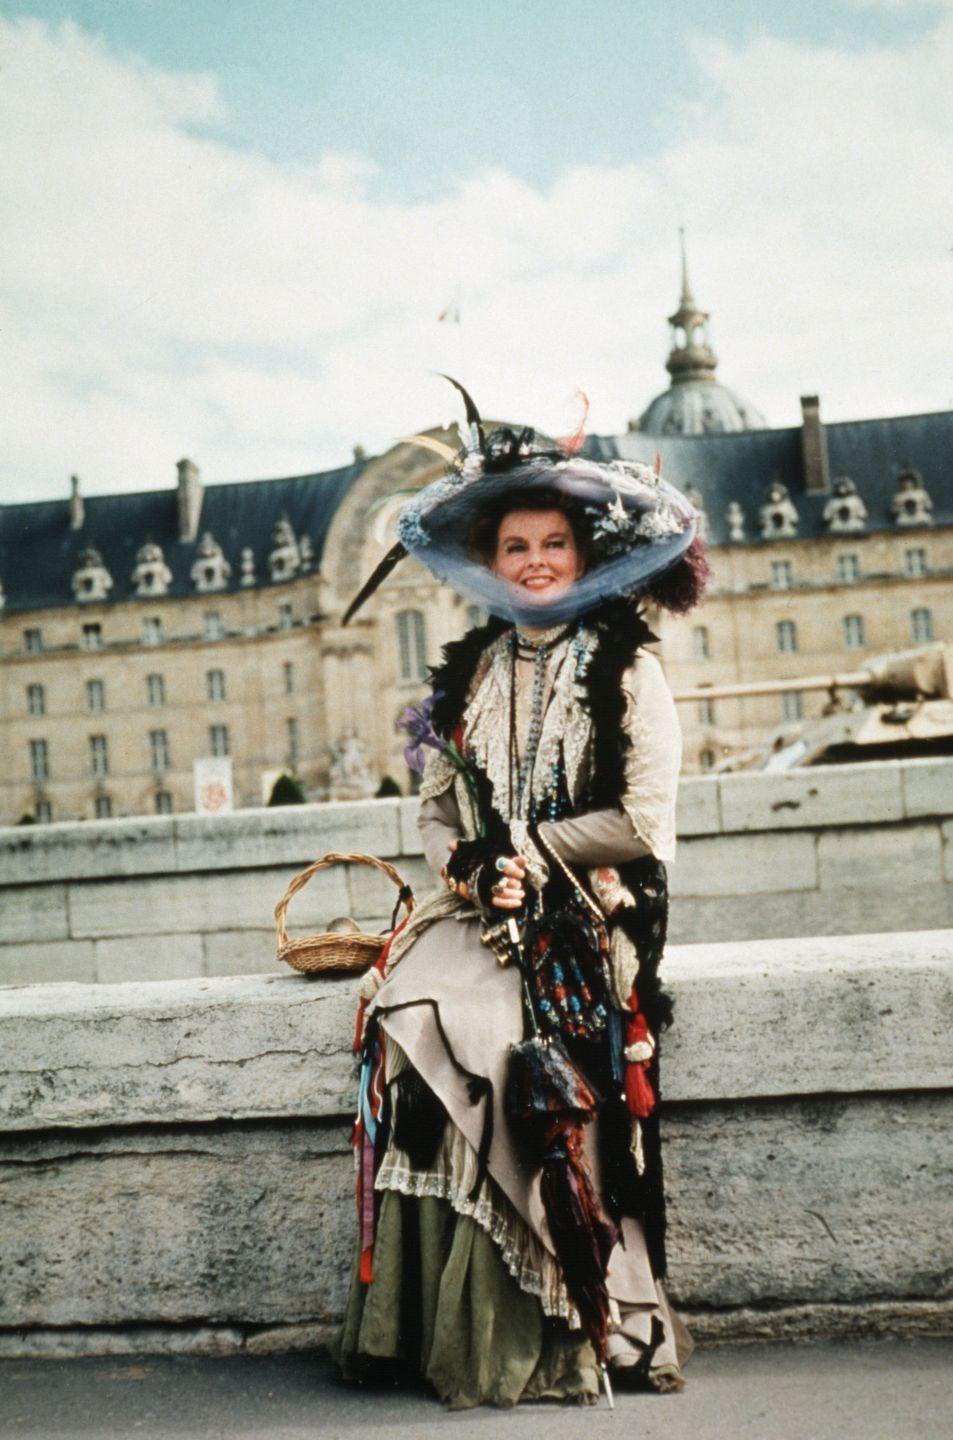 <p>Talk about Paris fashion. The always-stylish Katharine Hepburn takes a break on set of <em>The Madwoman of Chaillot </em>in her iconic costume.</p>